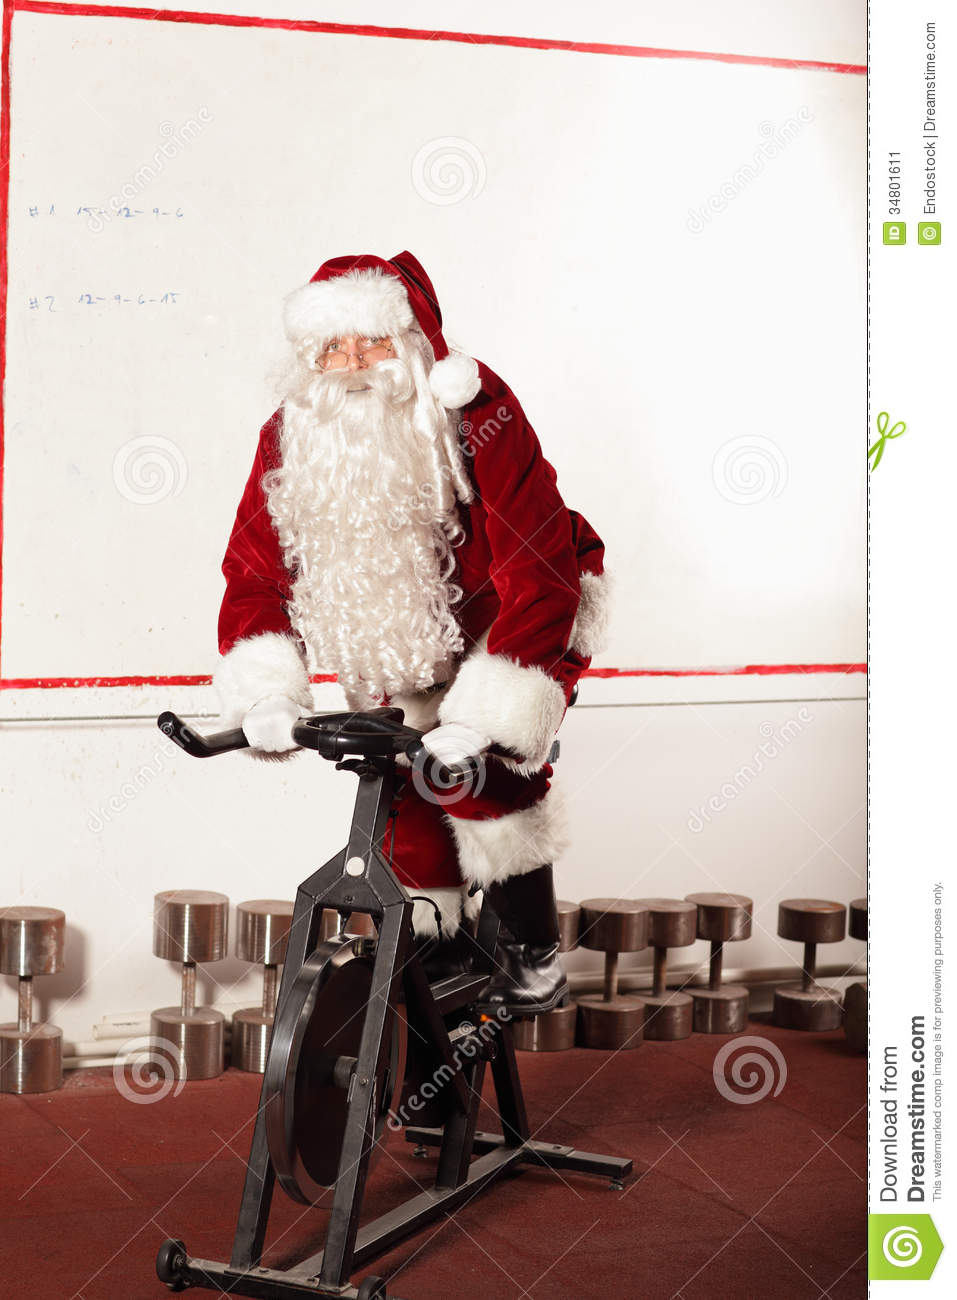 Santa Claus Training On Exercise Bike At The Gym Stock ...